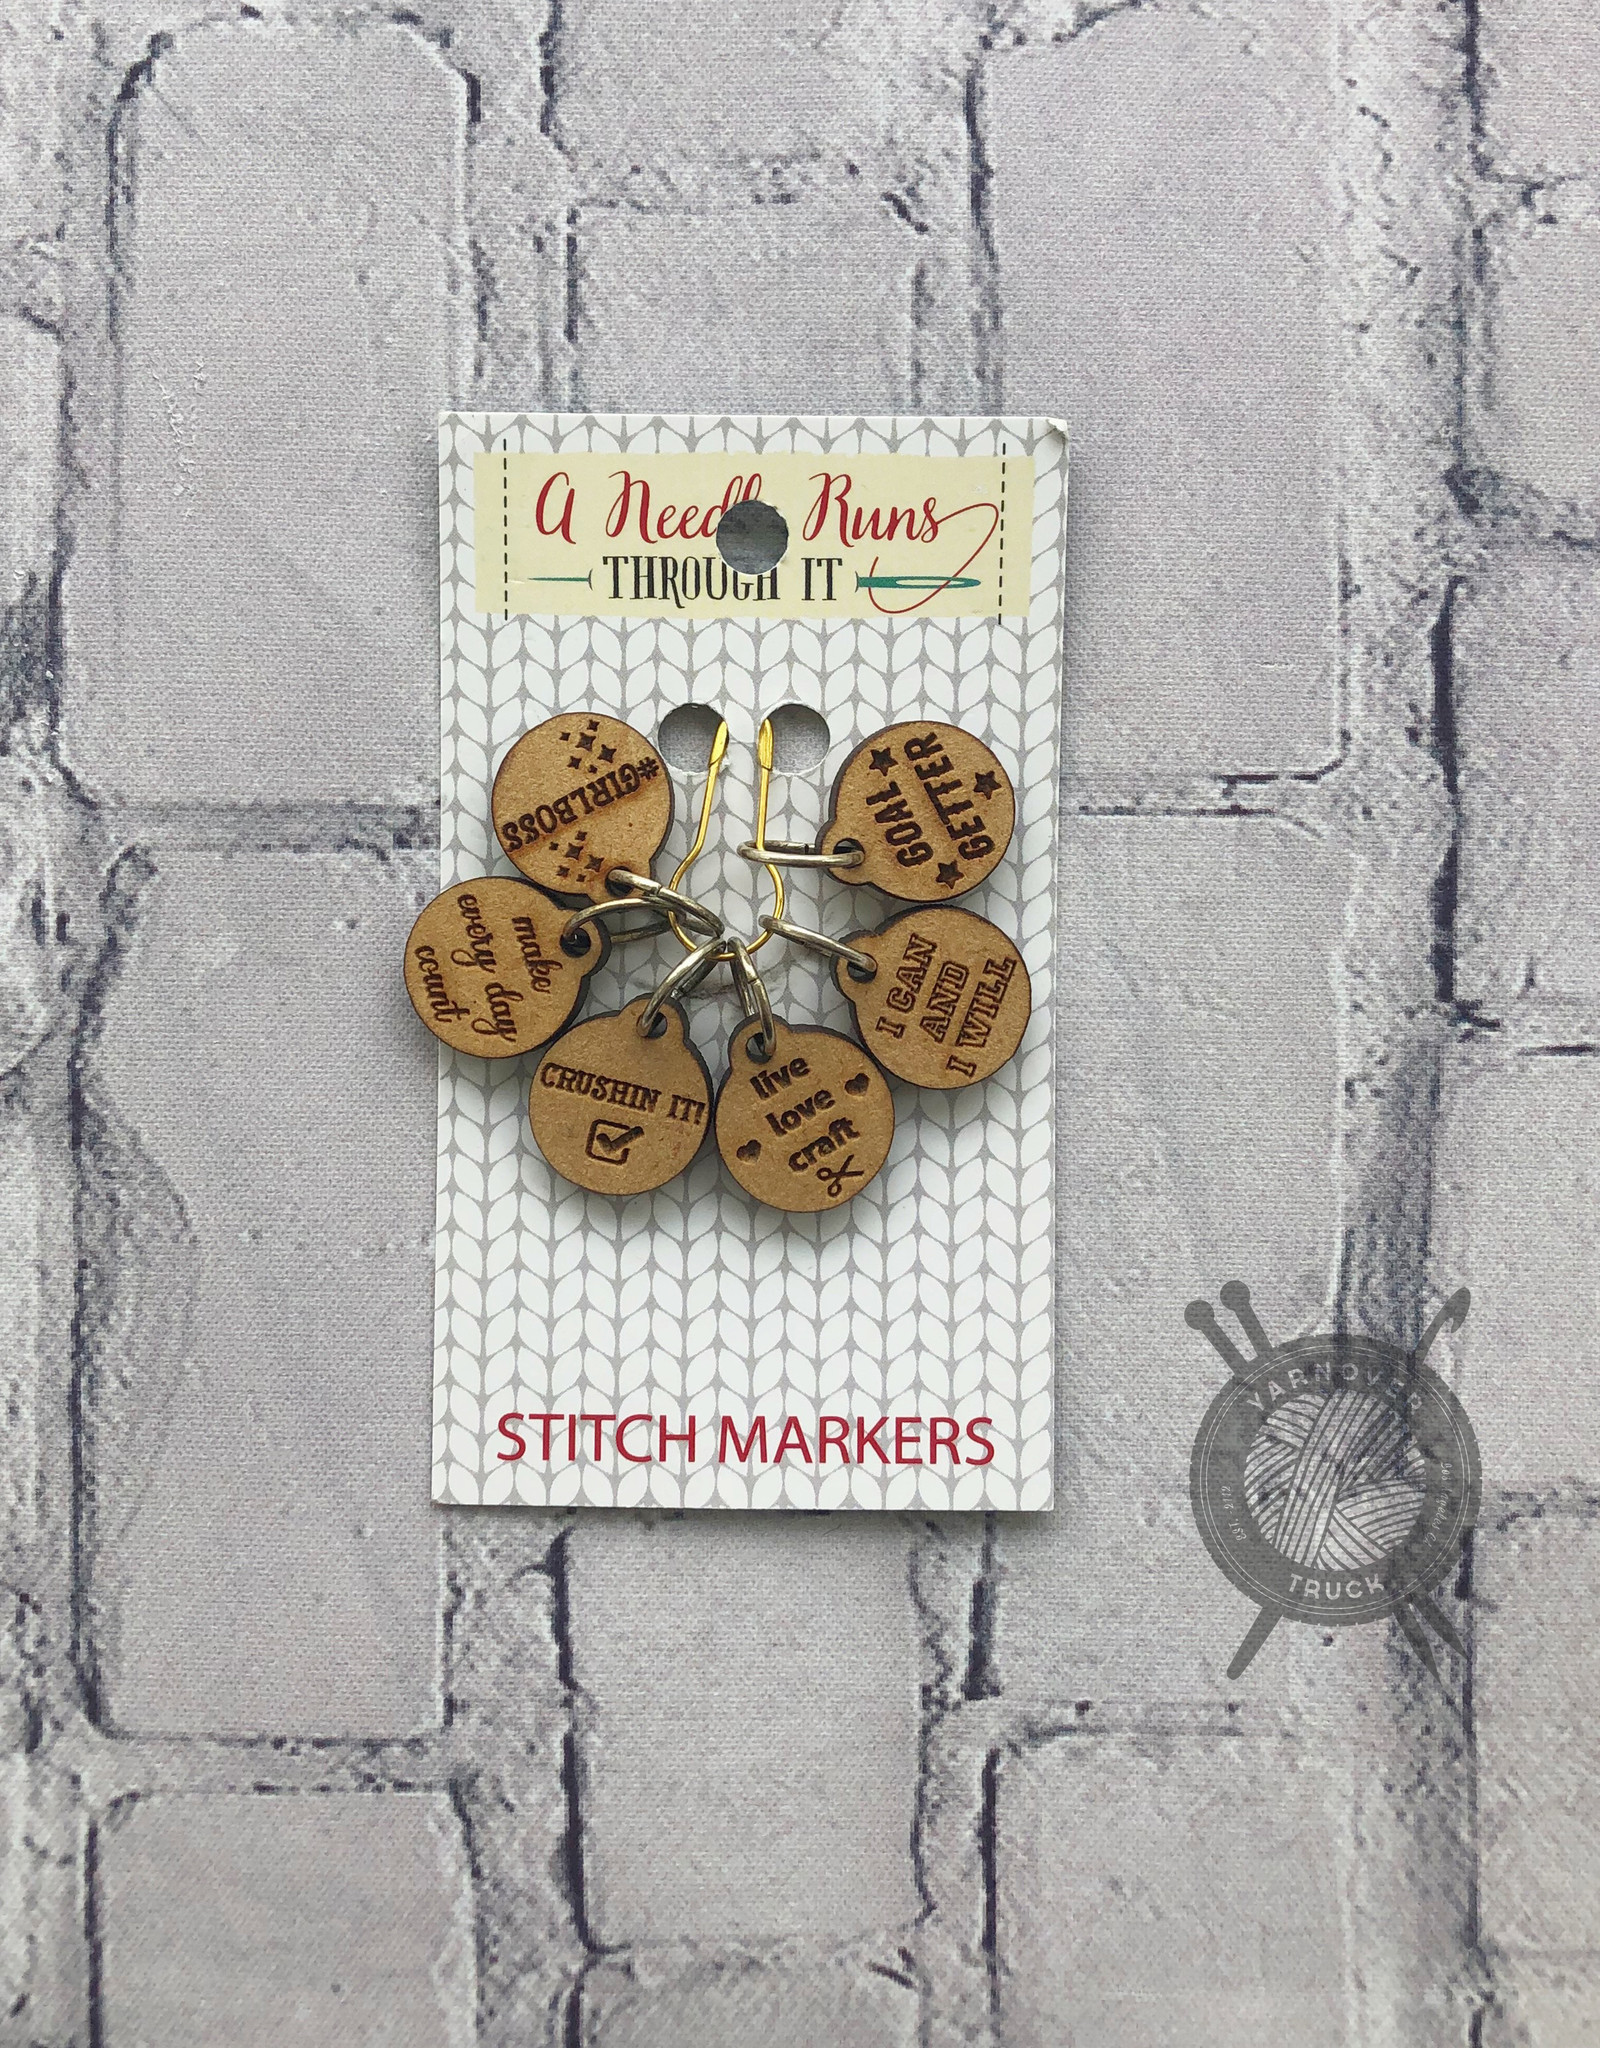 A Needle Runs Through It Inspirational Themed Stitch Marker Set for Knitting